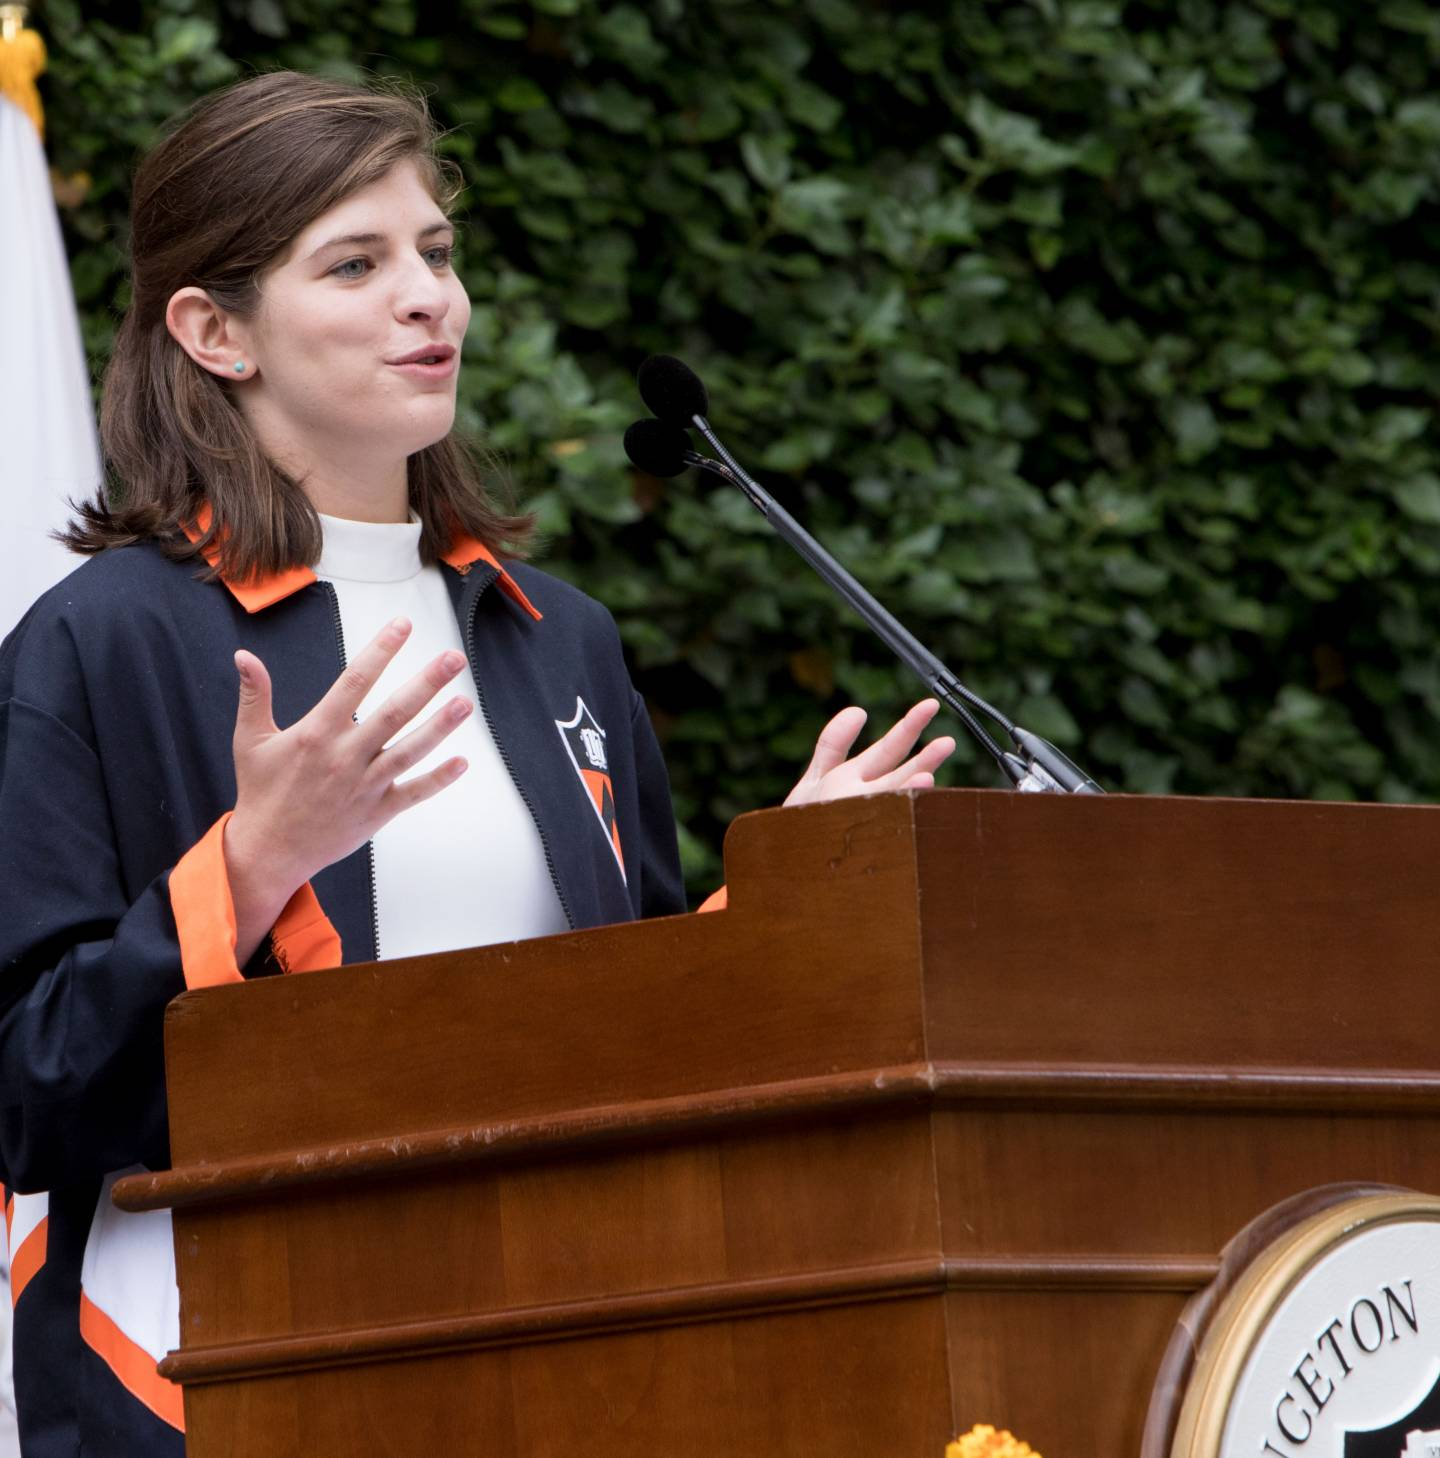 Maddie Meyers at podium during Class Day 2017 ceremony